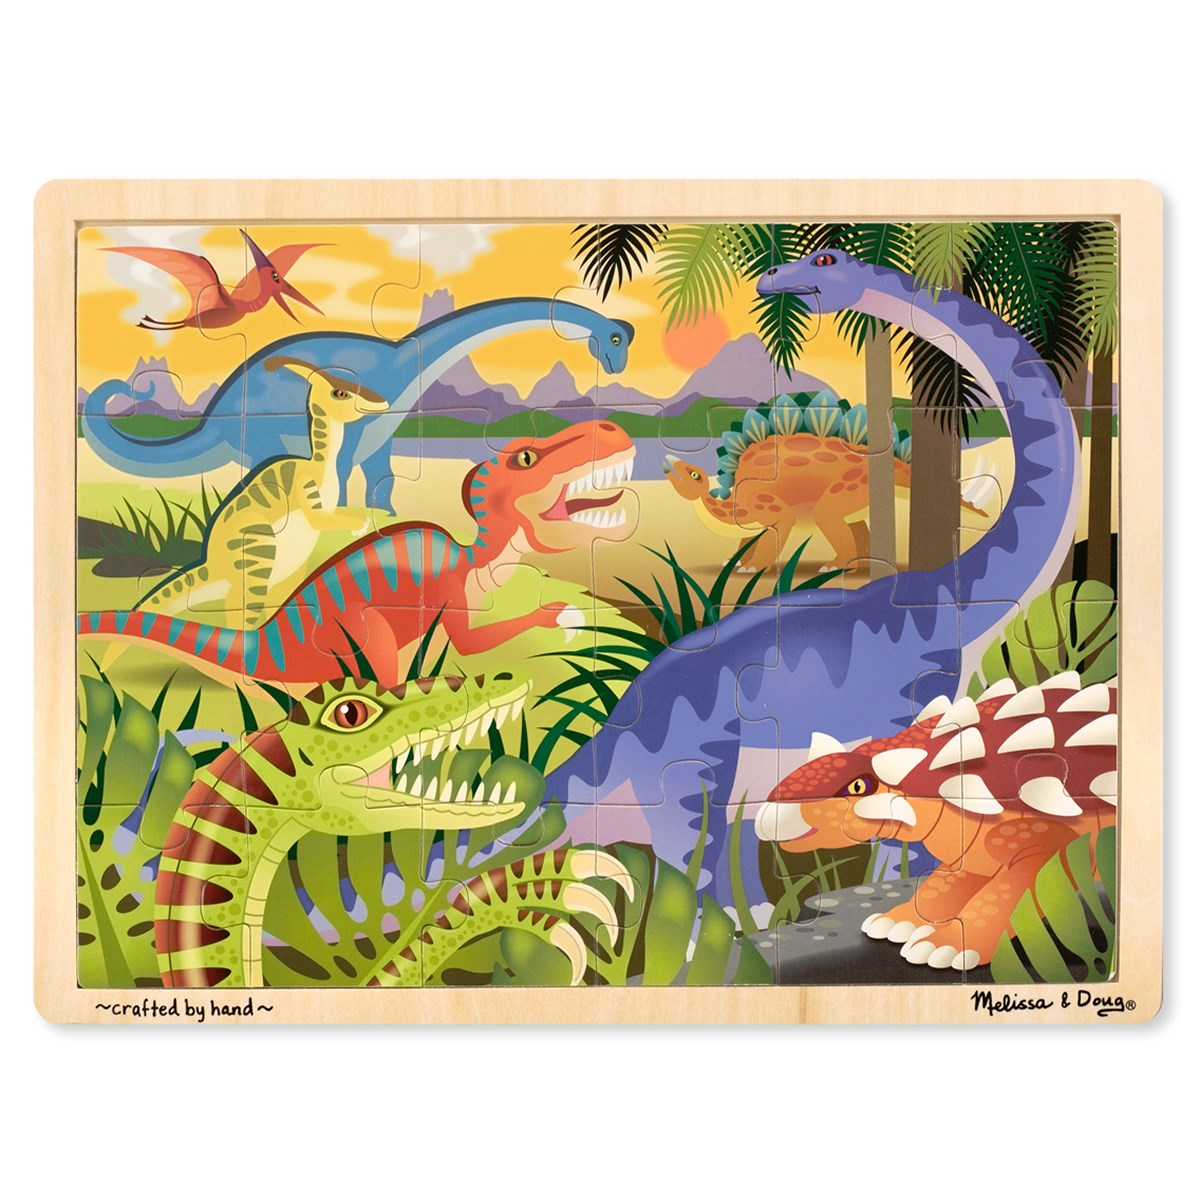 Melissa & Doug Dinosaurs Wooden Jigsaw Puzzle - 24 pieces